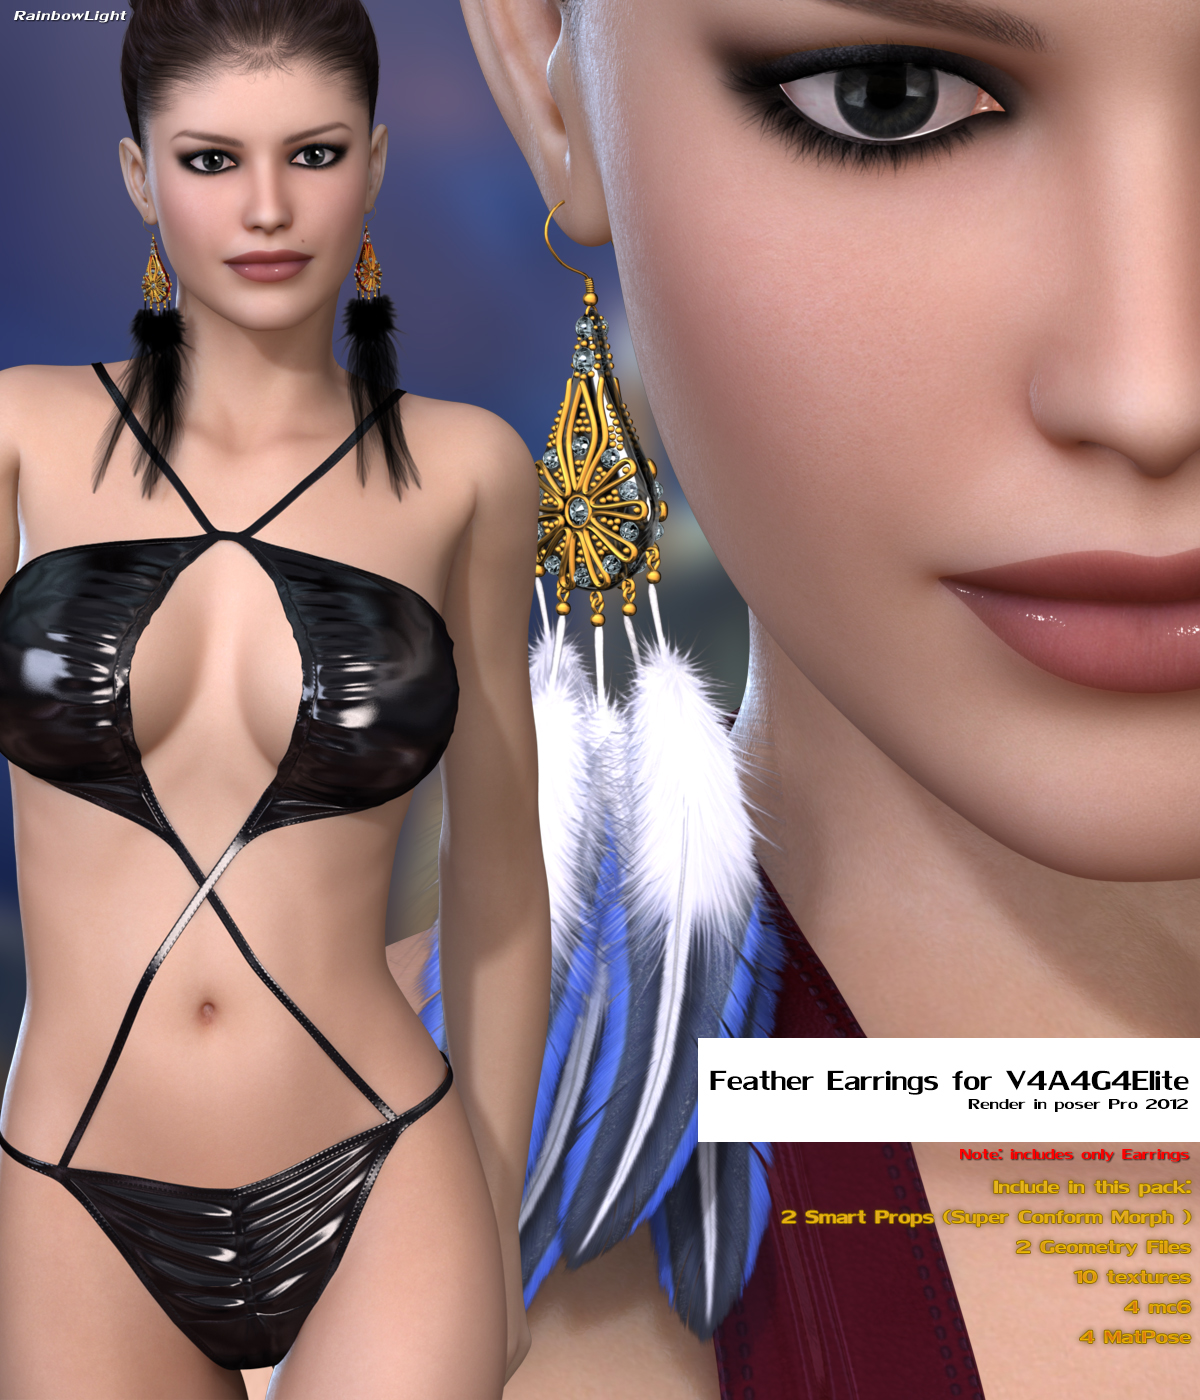 Feather Earrings for V4A4G4Elite